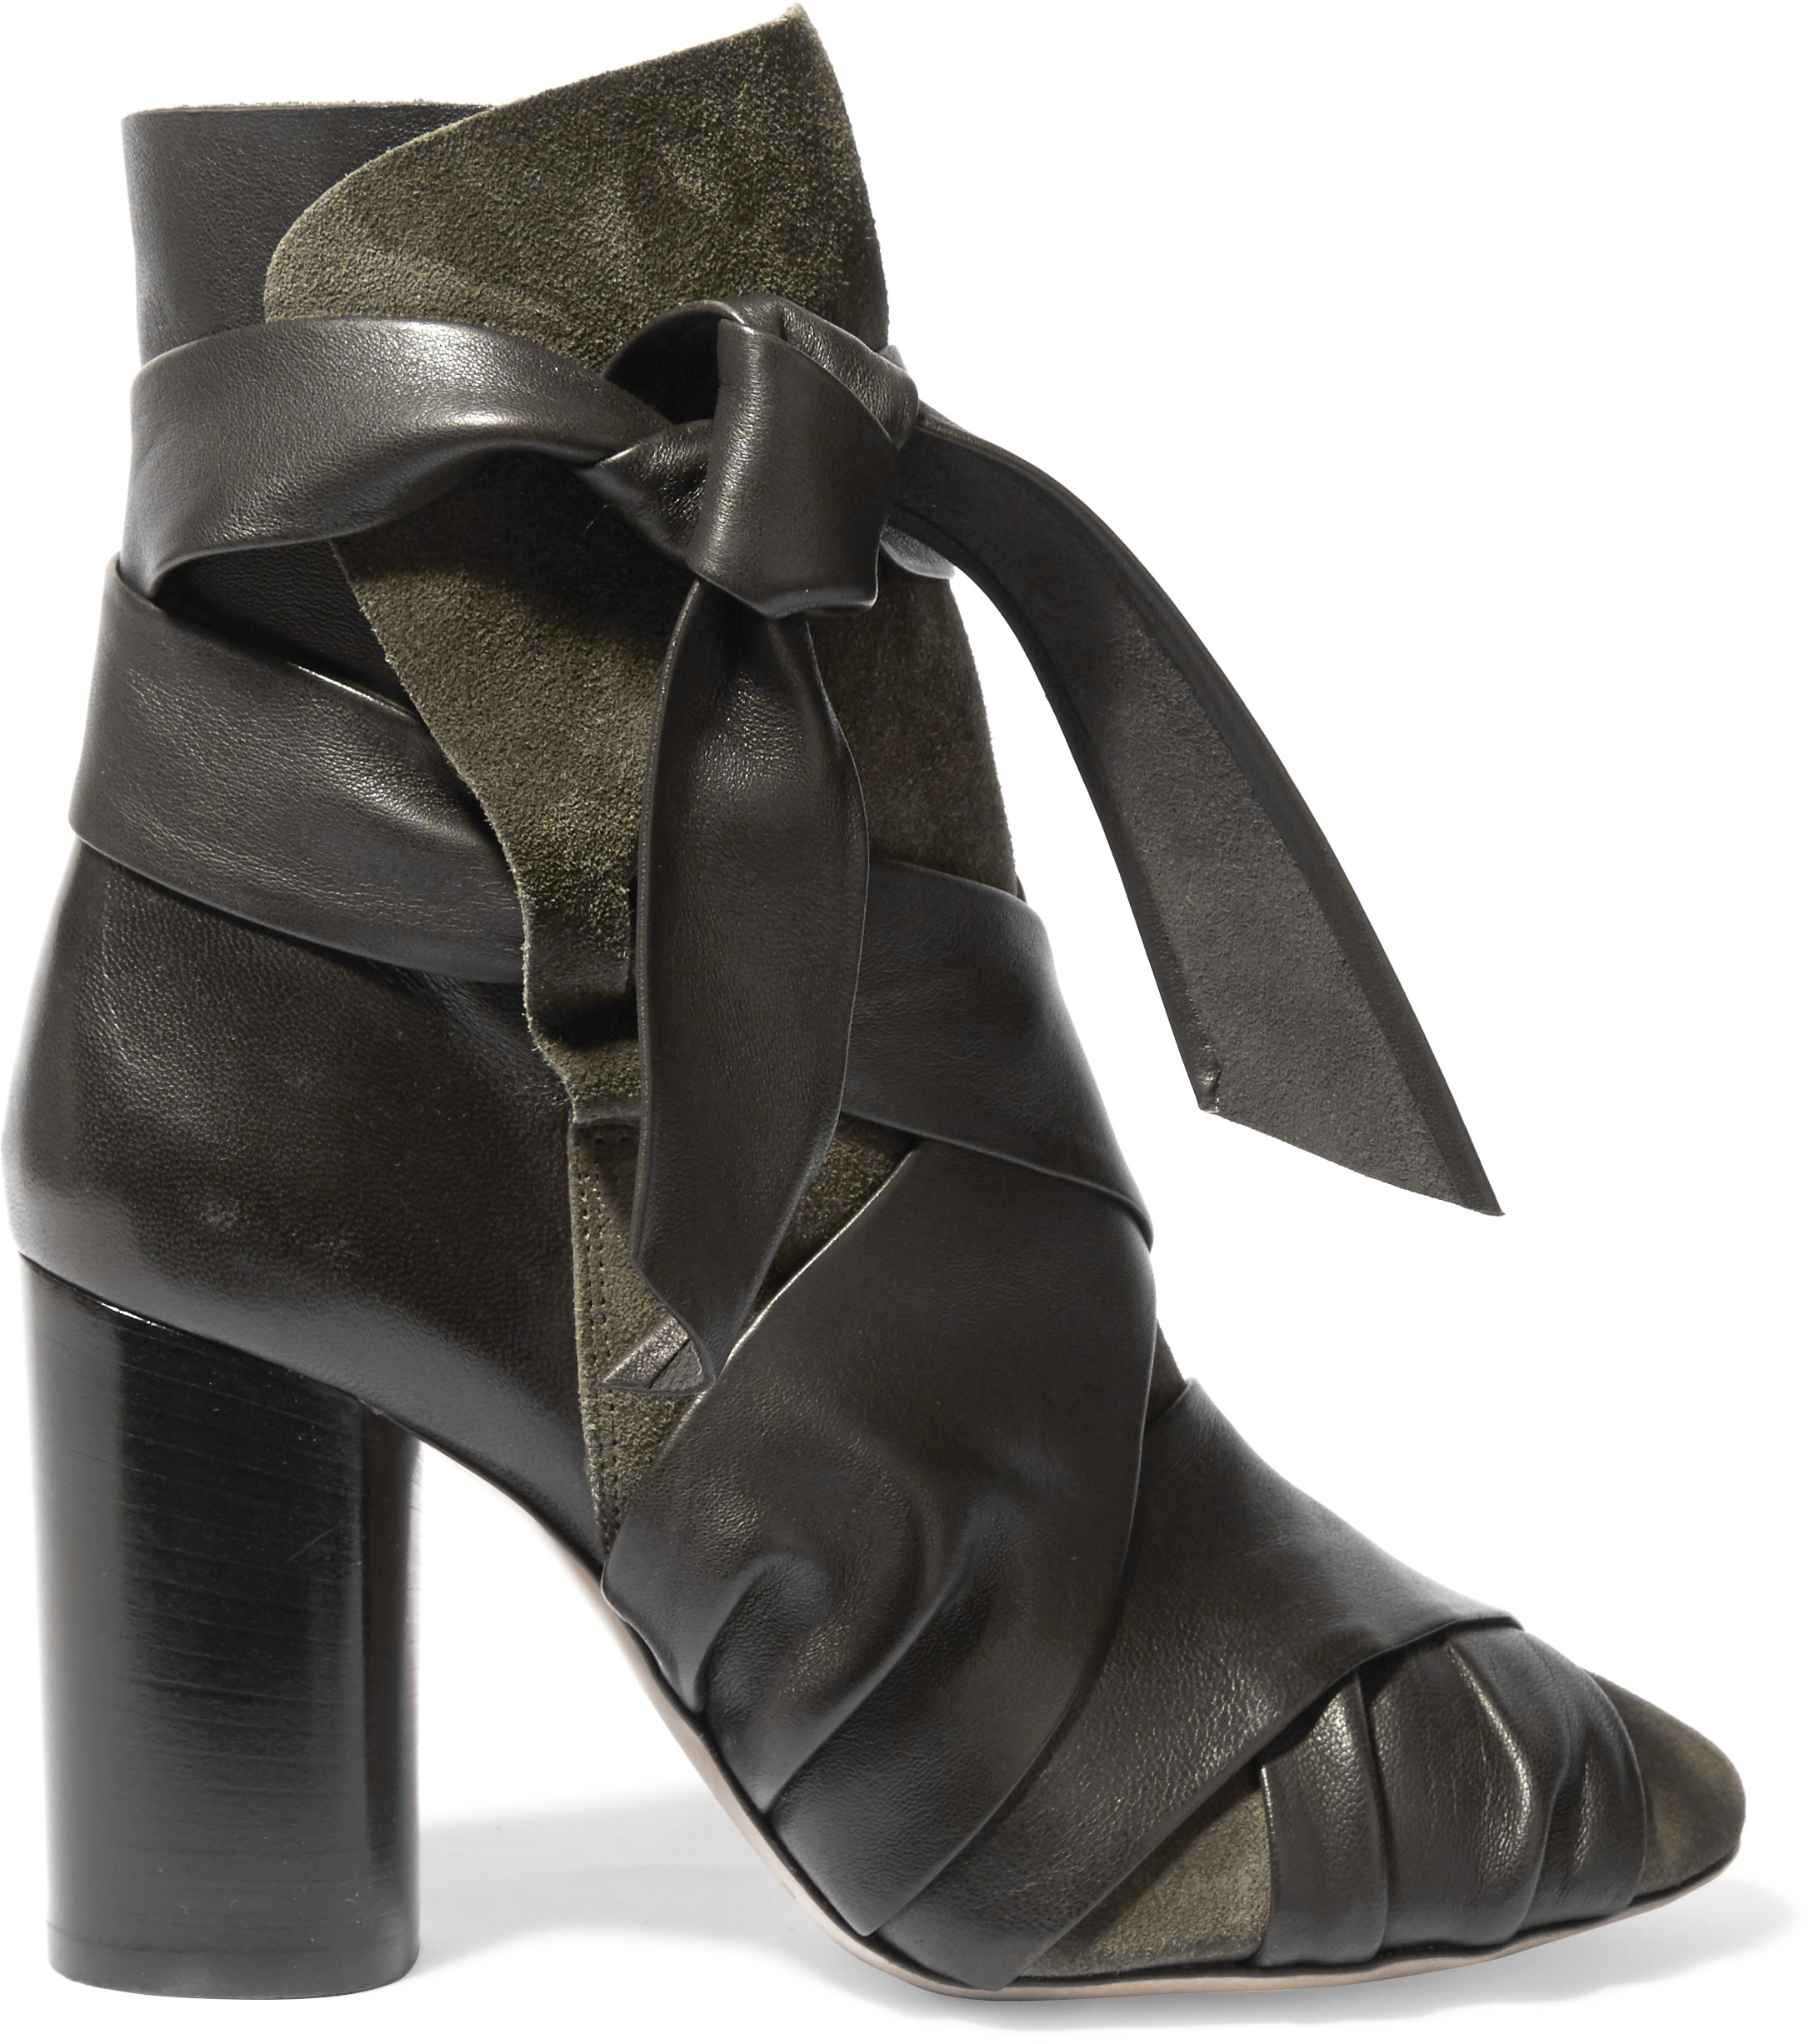 703268_ Isabel Marant_Azel suede and leather boots_THEOUTNET.COM.jpg